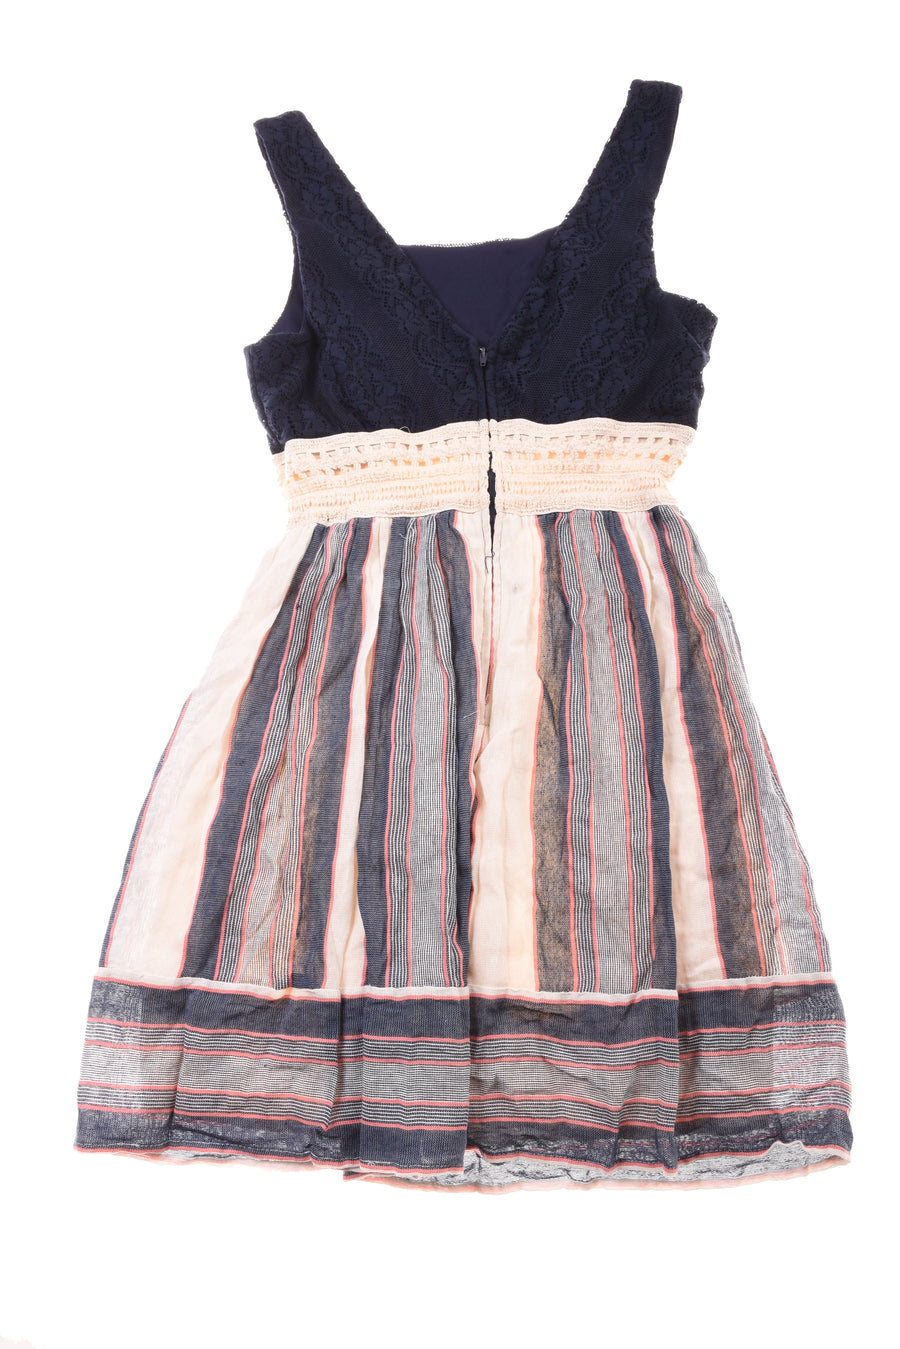 NEW Three Pink Hearts Girl's Dress Large Navy Blue & Nude